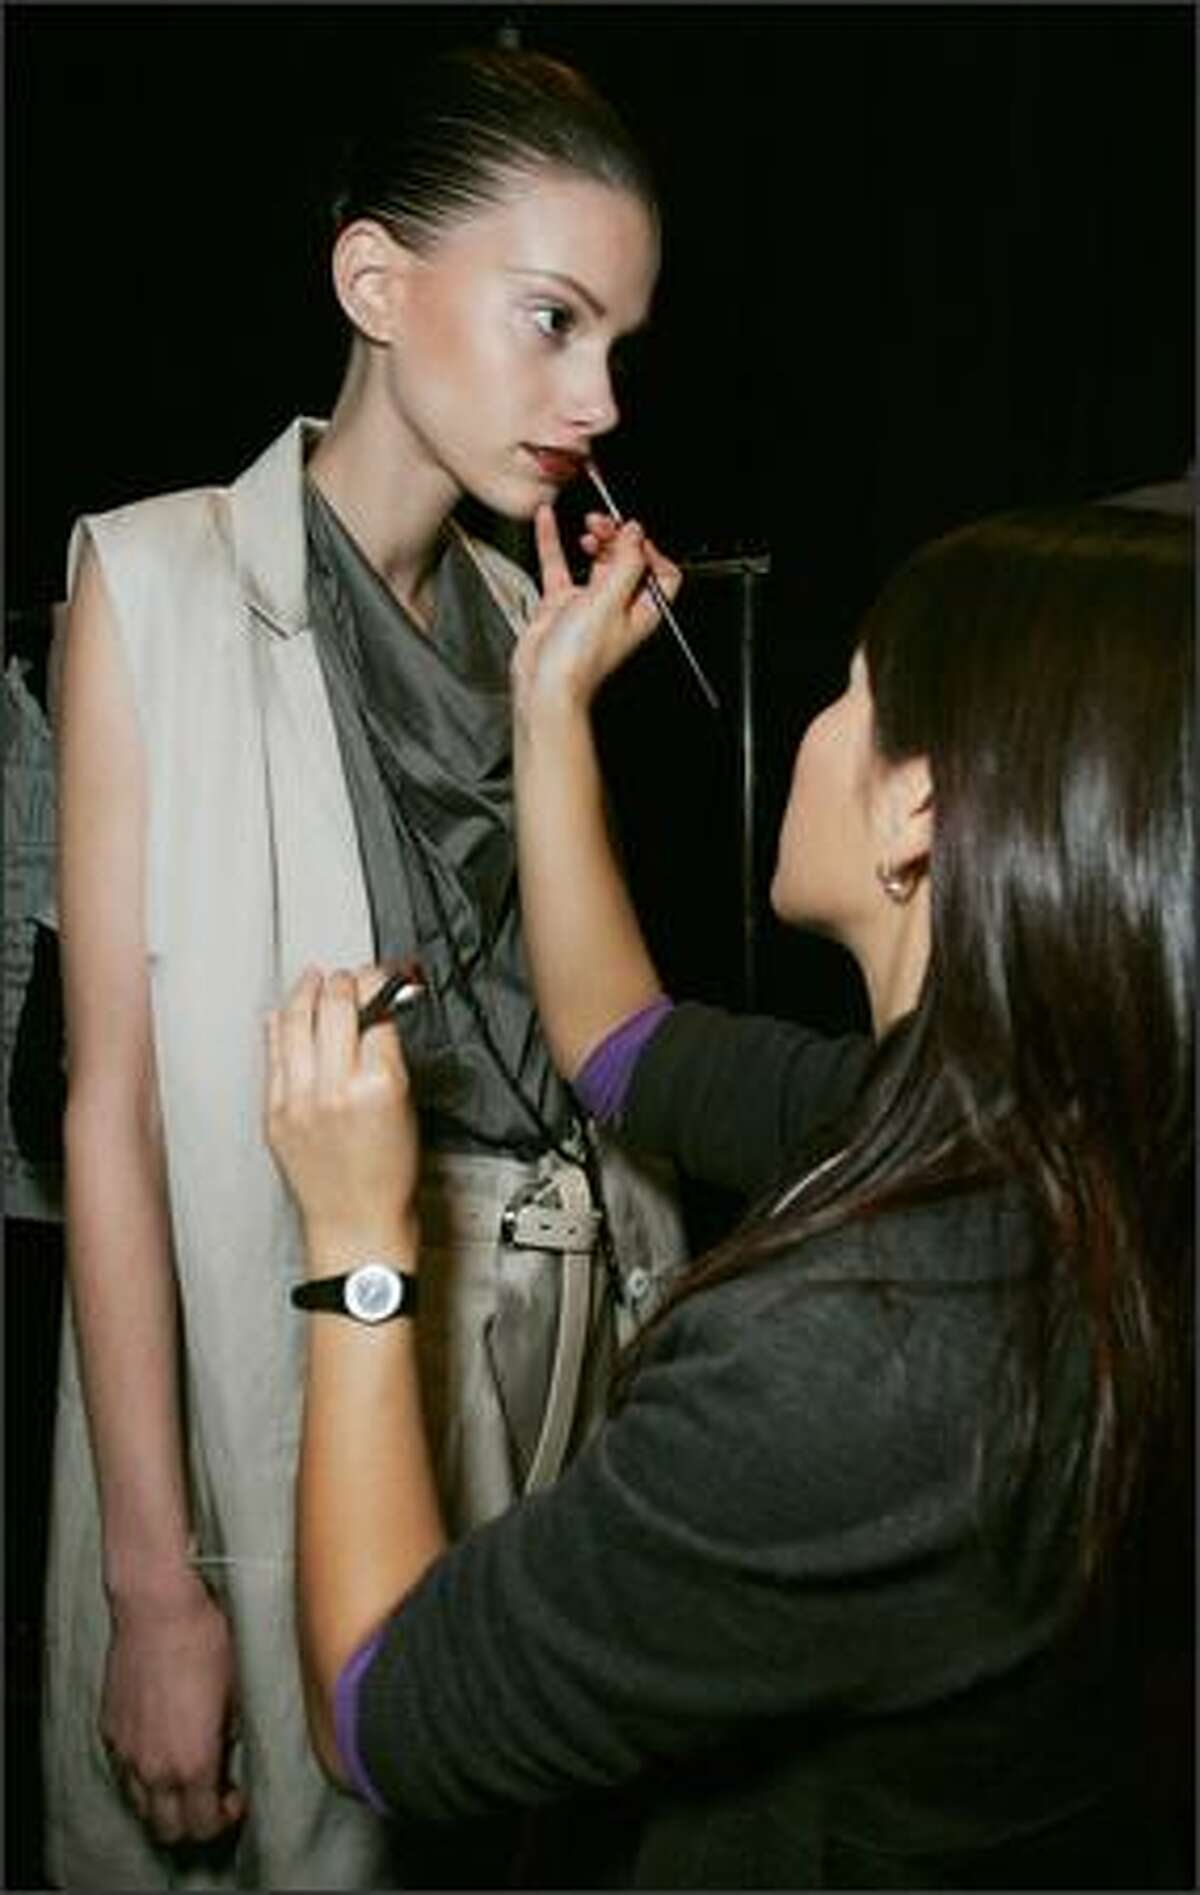 A model has make-up applied backstage ahead of the Lisa Ho show.